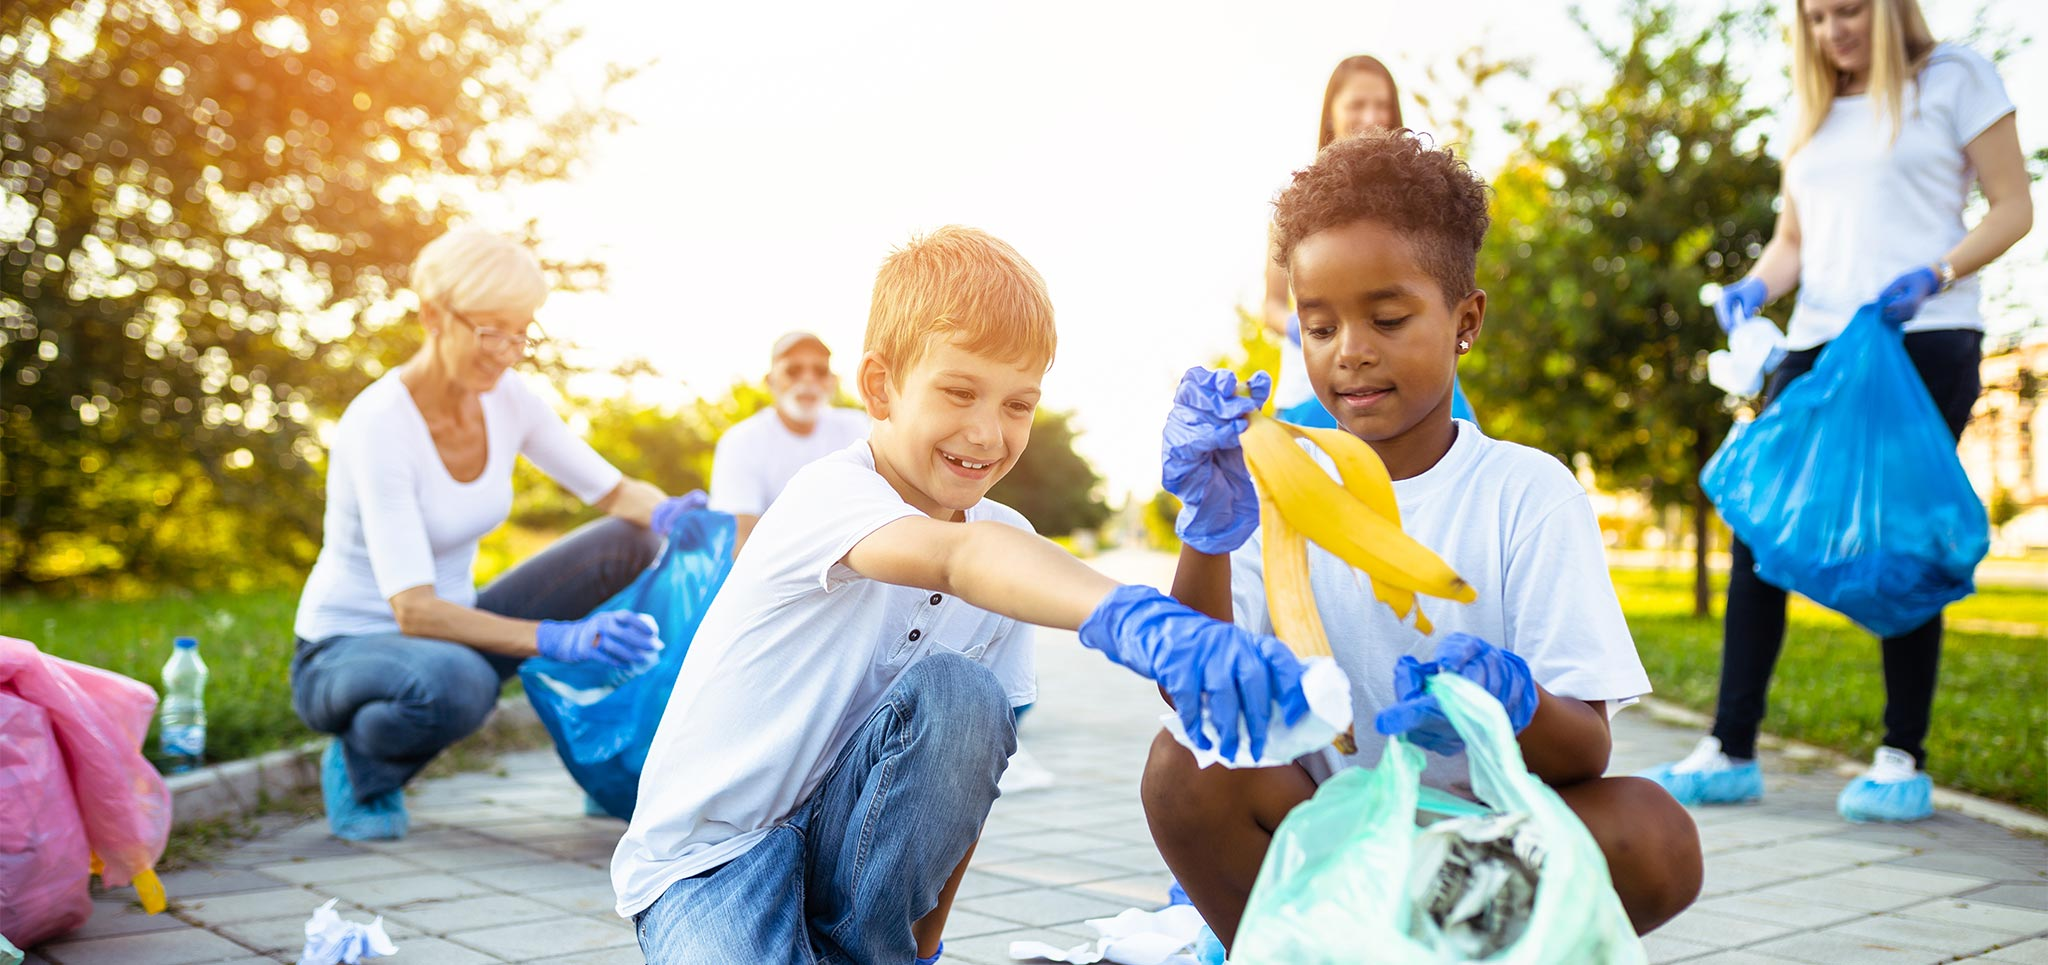 Children looking way too interested in picking garbage